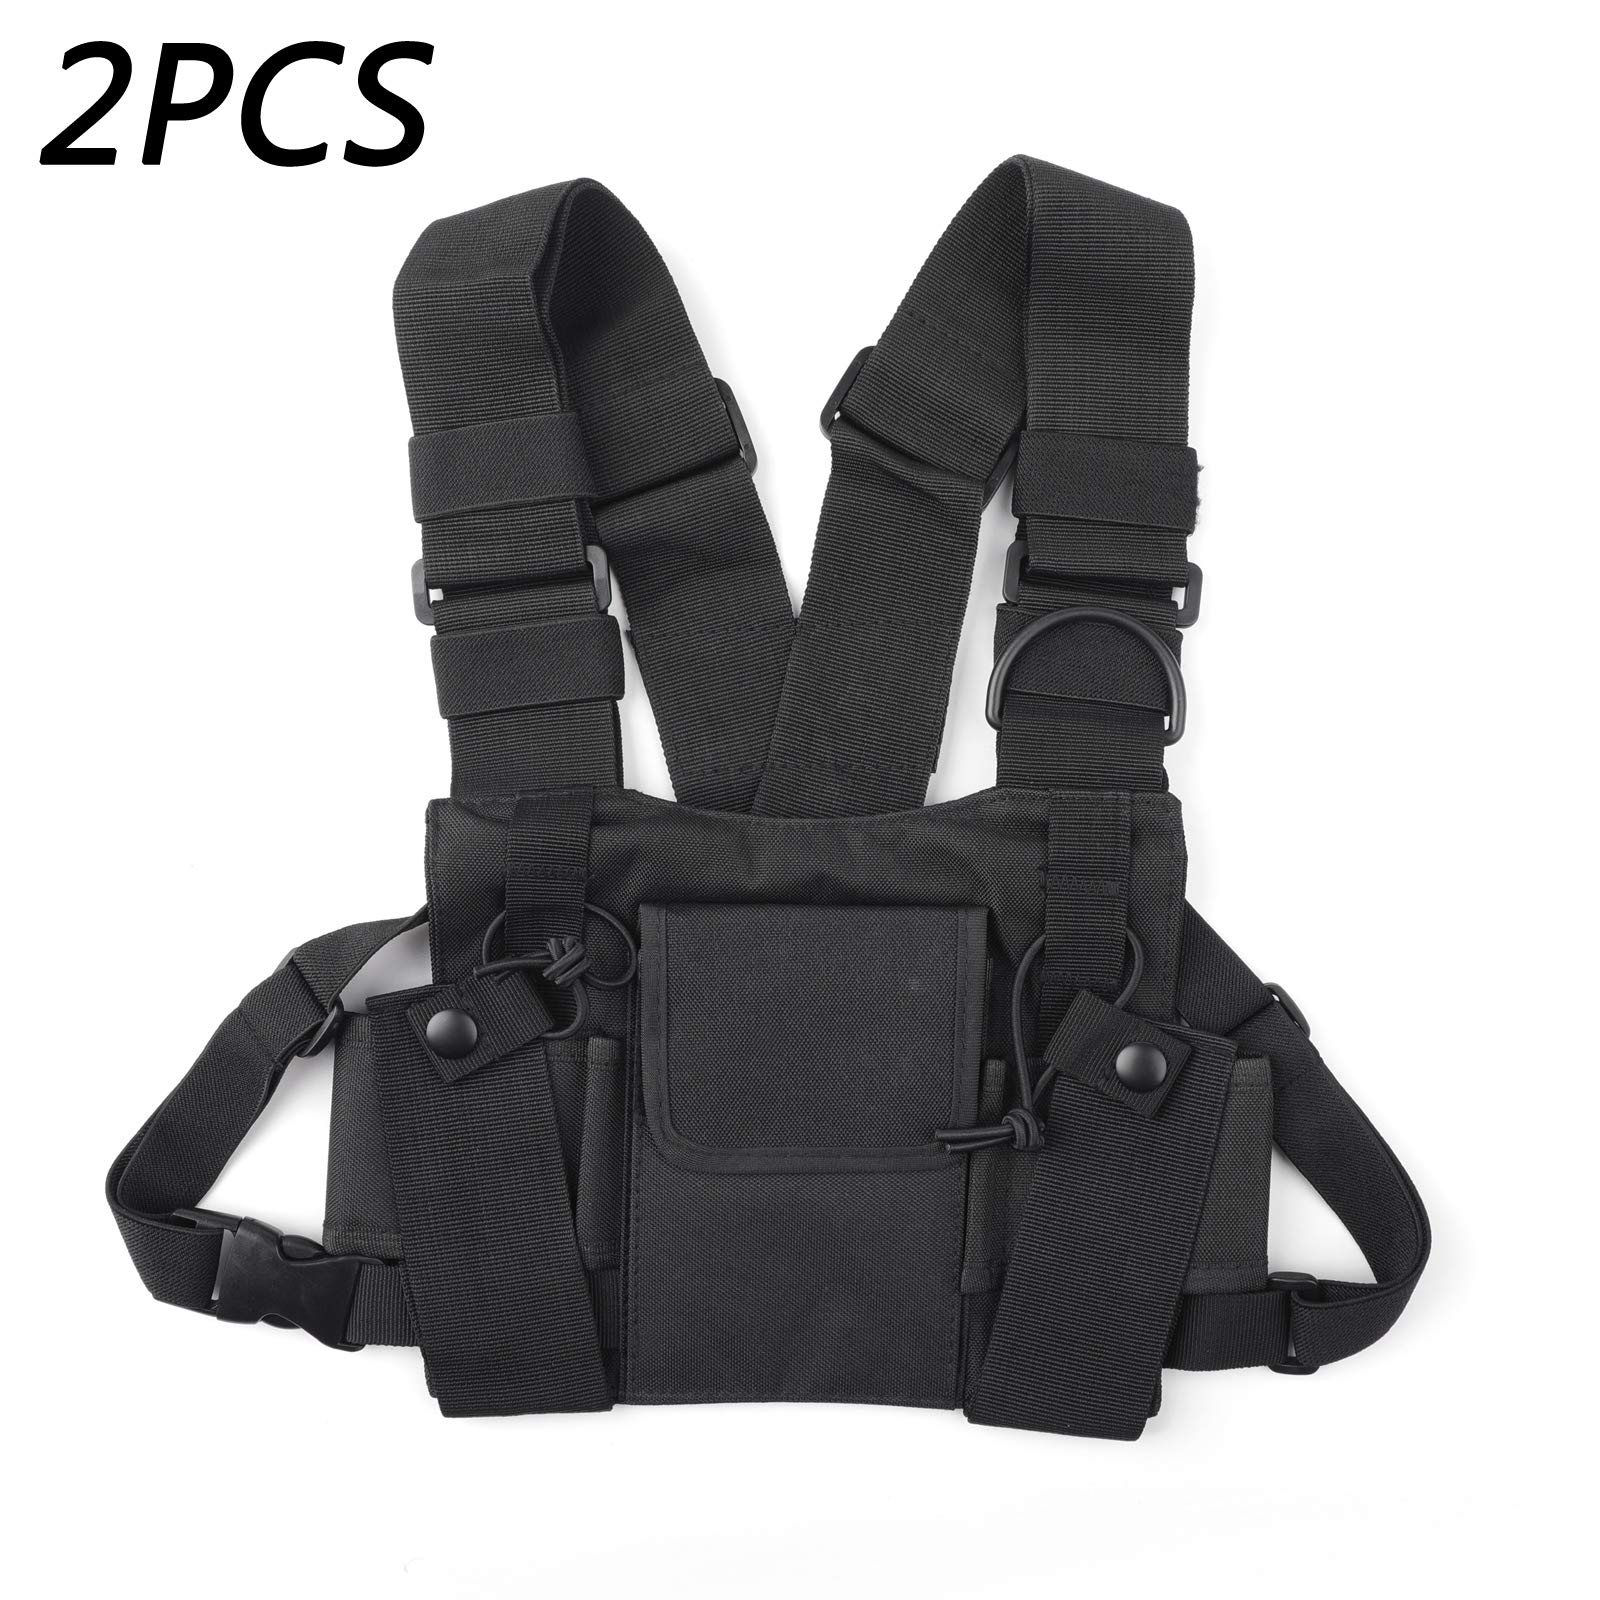 Areyourshop 2PCS Multi-Function Interphone Chest Pocket Radio Equipment Pack Rescue Backpack